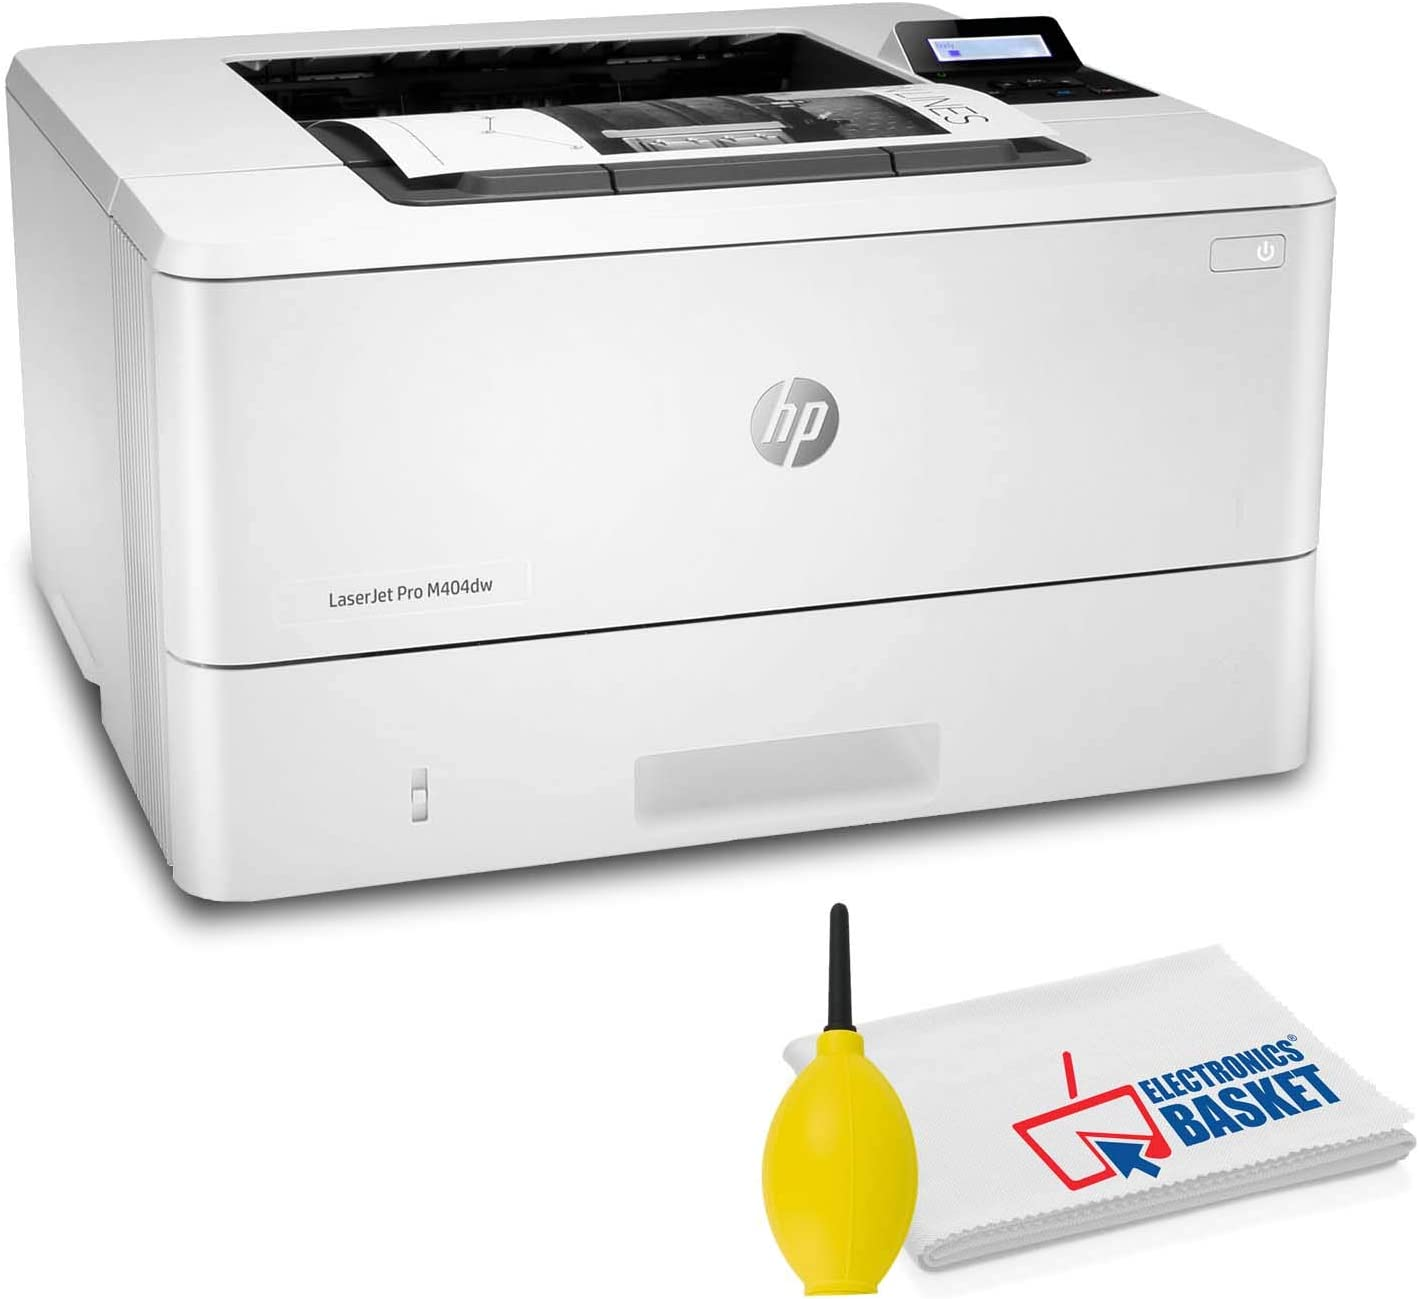 HP Laserjet Pro M404dw Bundled with Dust Blower and Microfiber Cloth